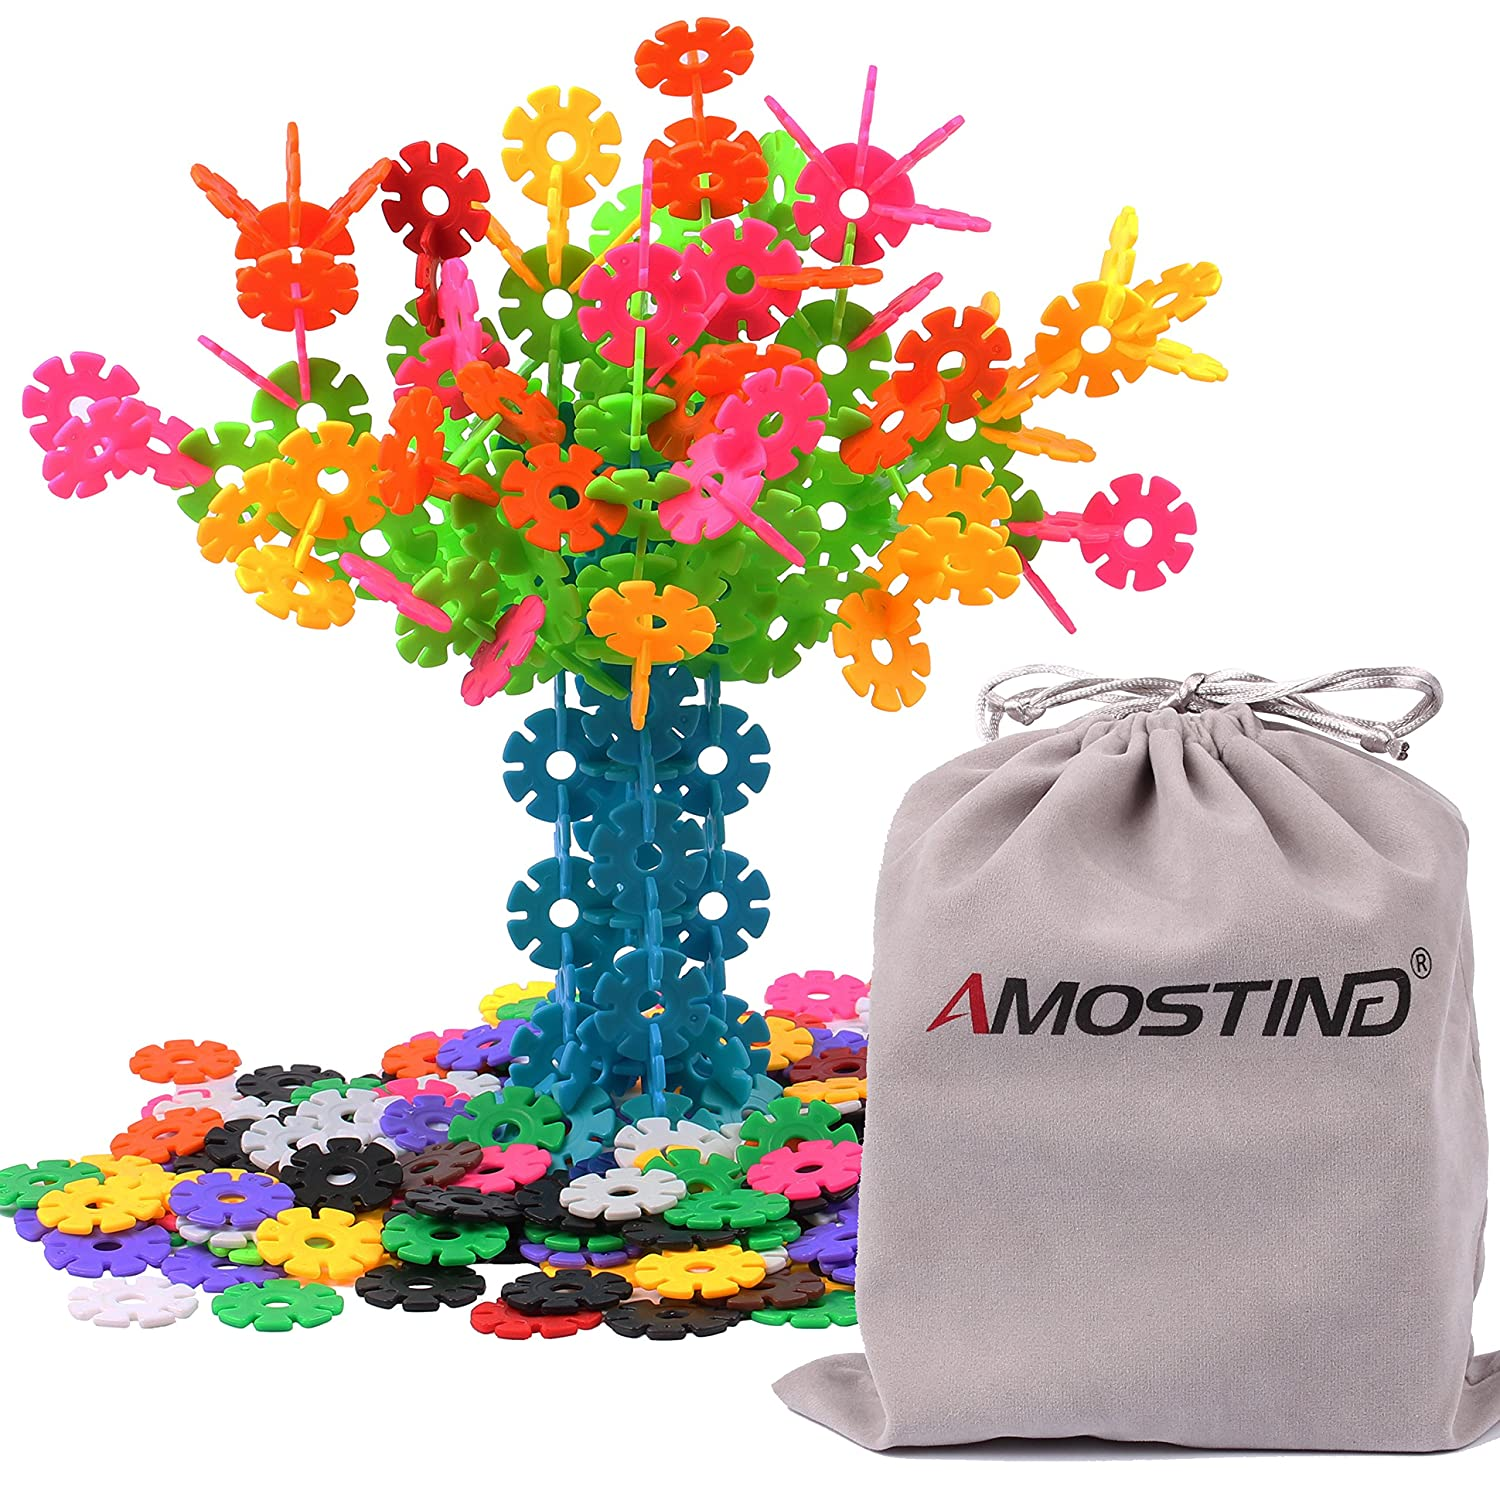 AMOSTING Building Blocks Educational Toys Set Plastic Building